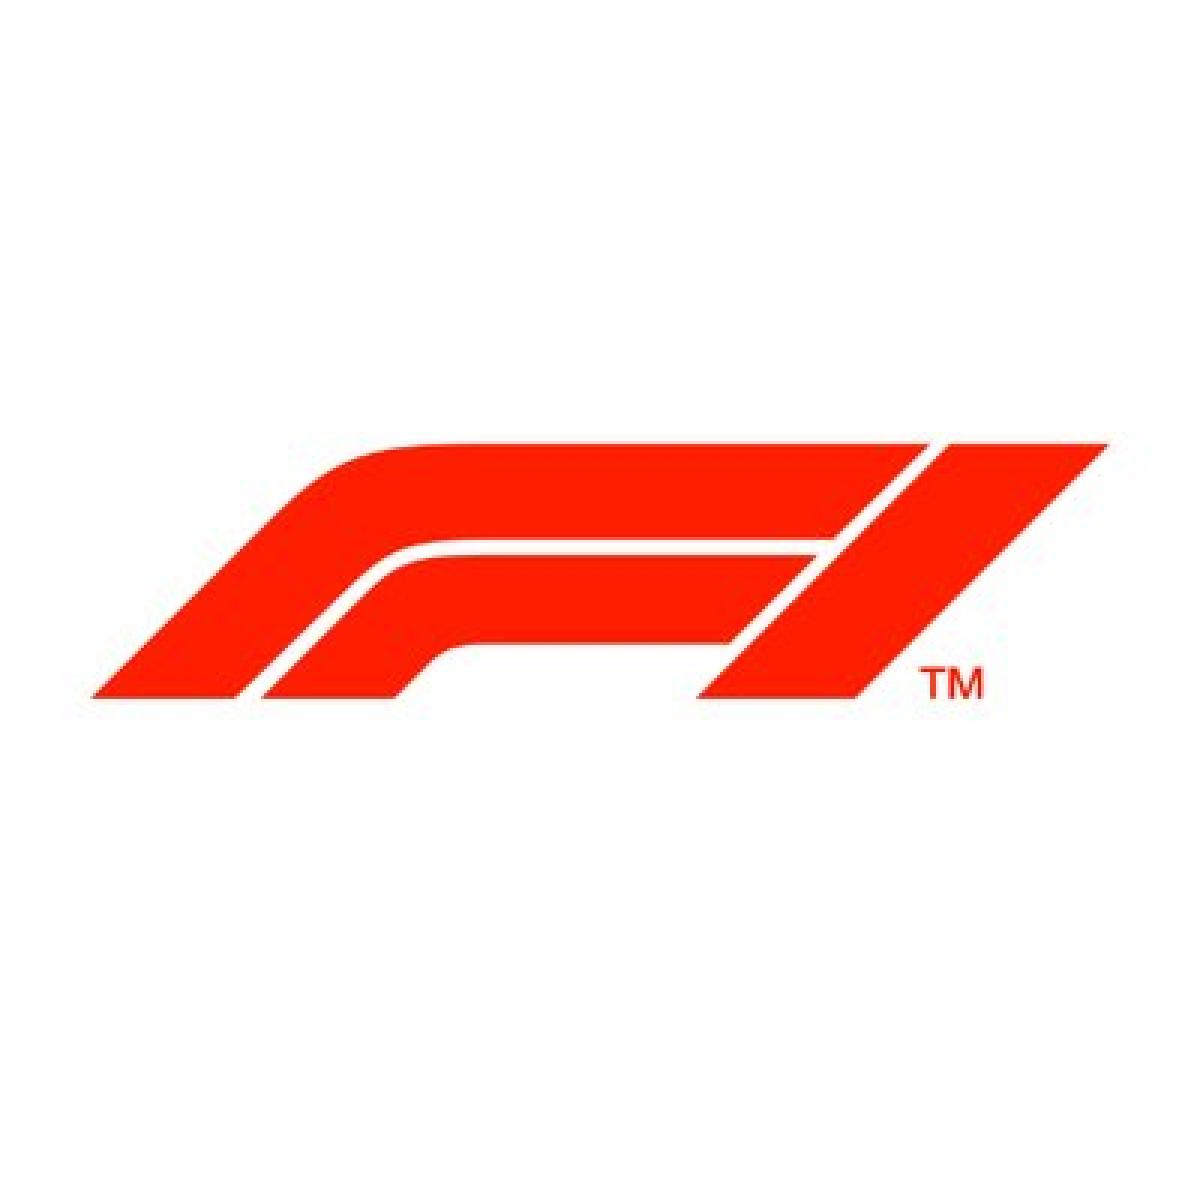 F1 changes logo for new-look future